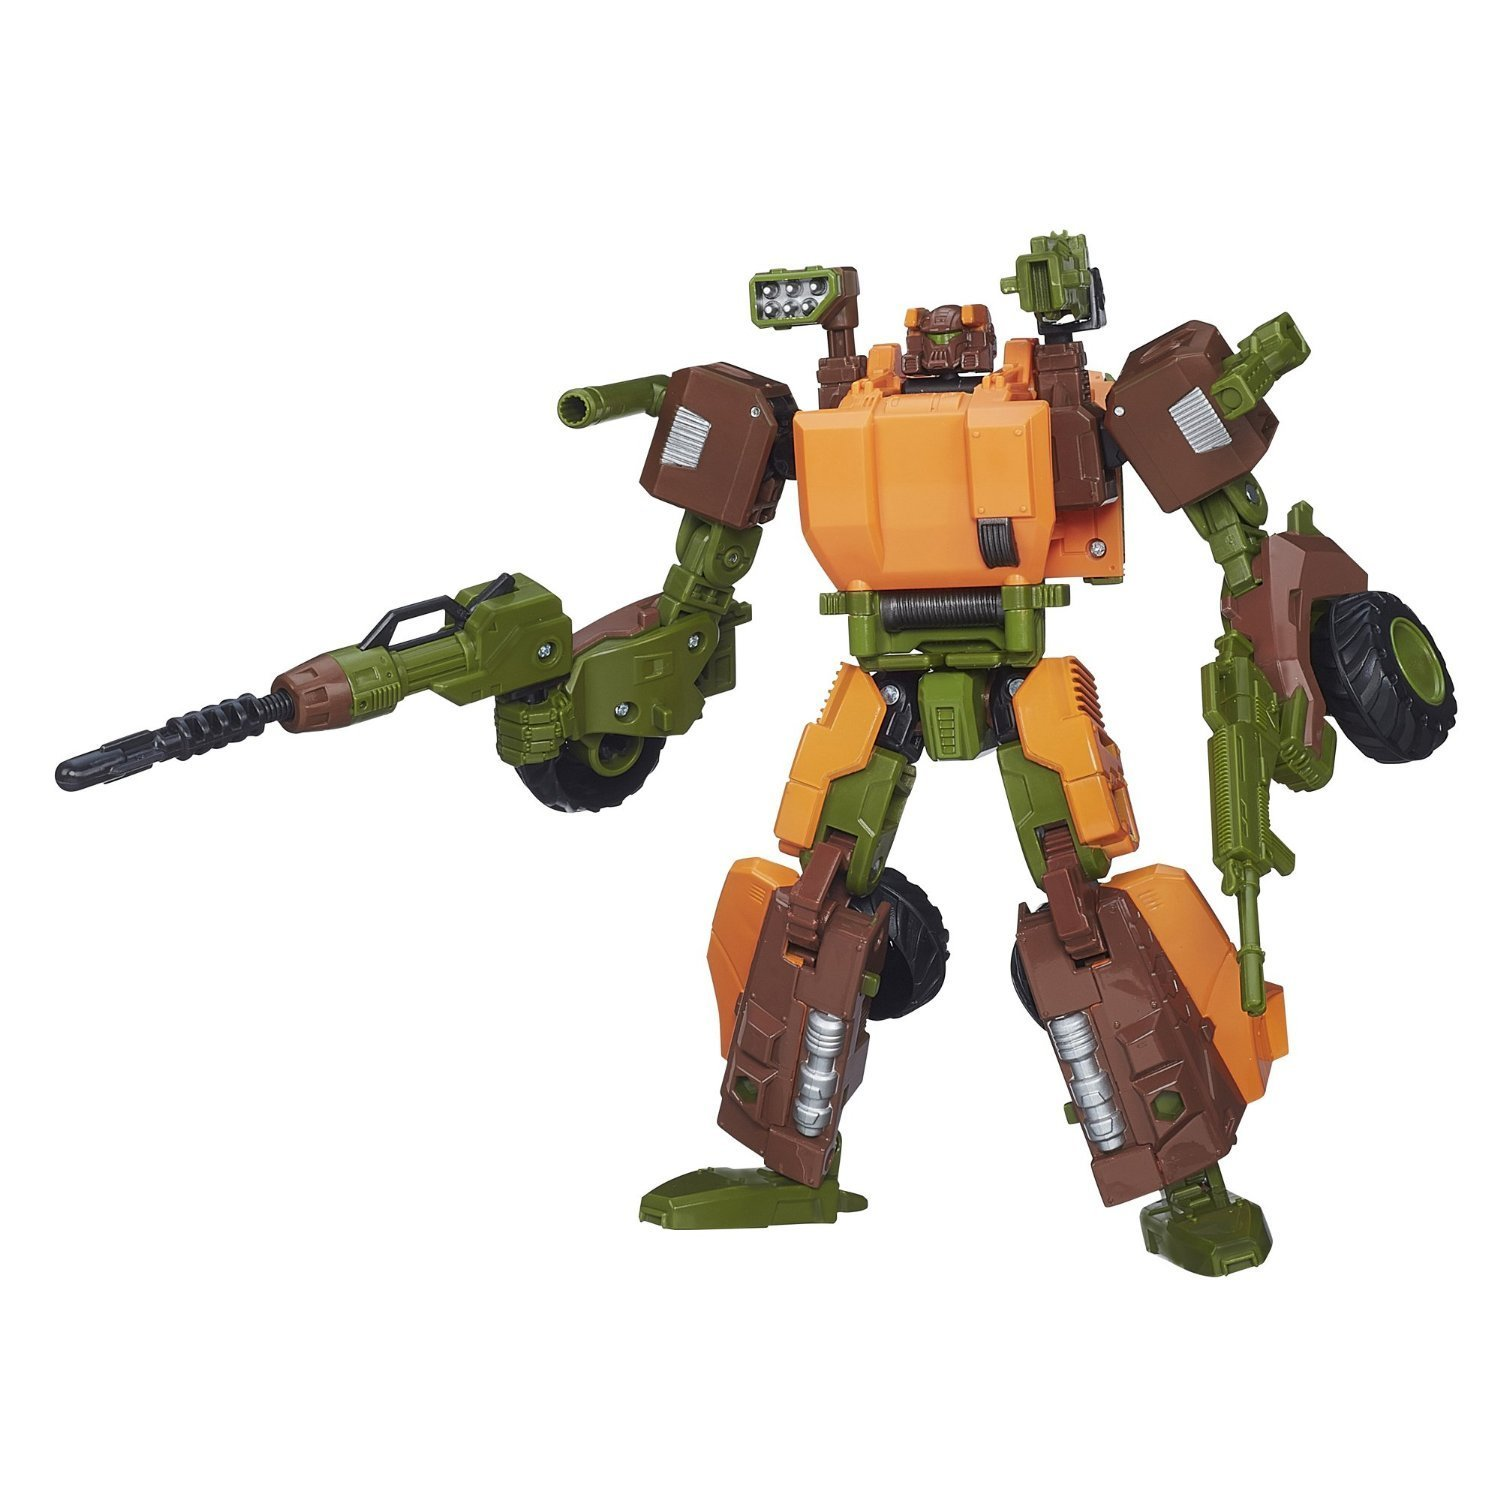 Hasbro Transformers Generations Thrilling 30 Anniversary Voyager Class Roadbuster Autobot Action Figure